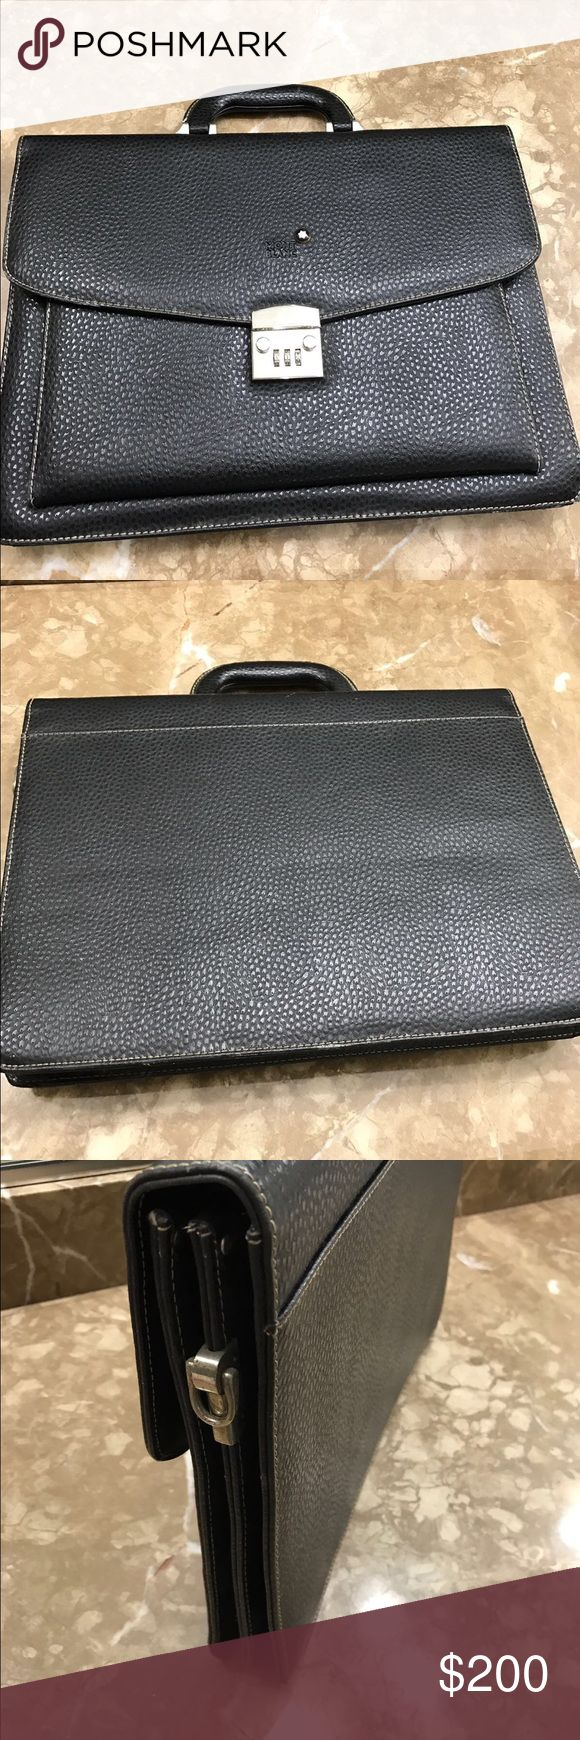 Montblanc handbag for men MontBlanc handbag for men preowned in great condition Accessories